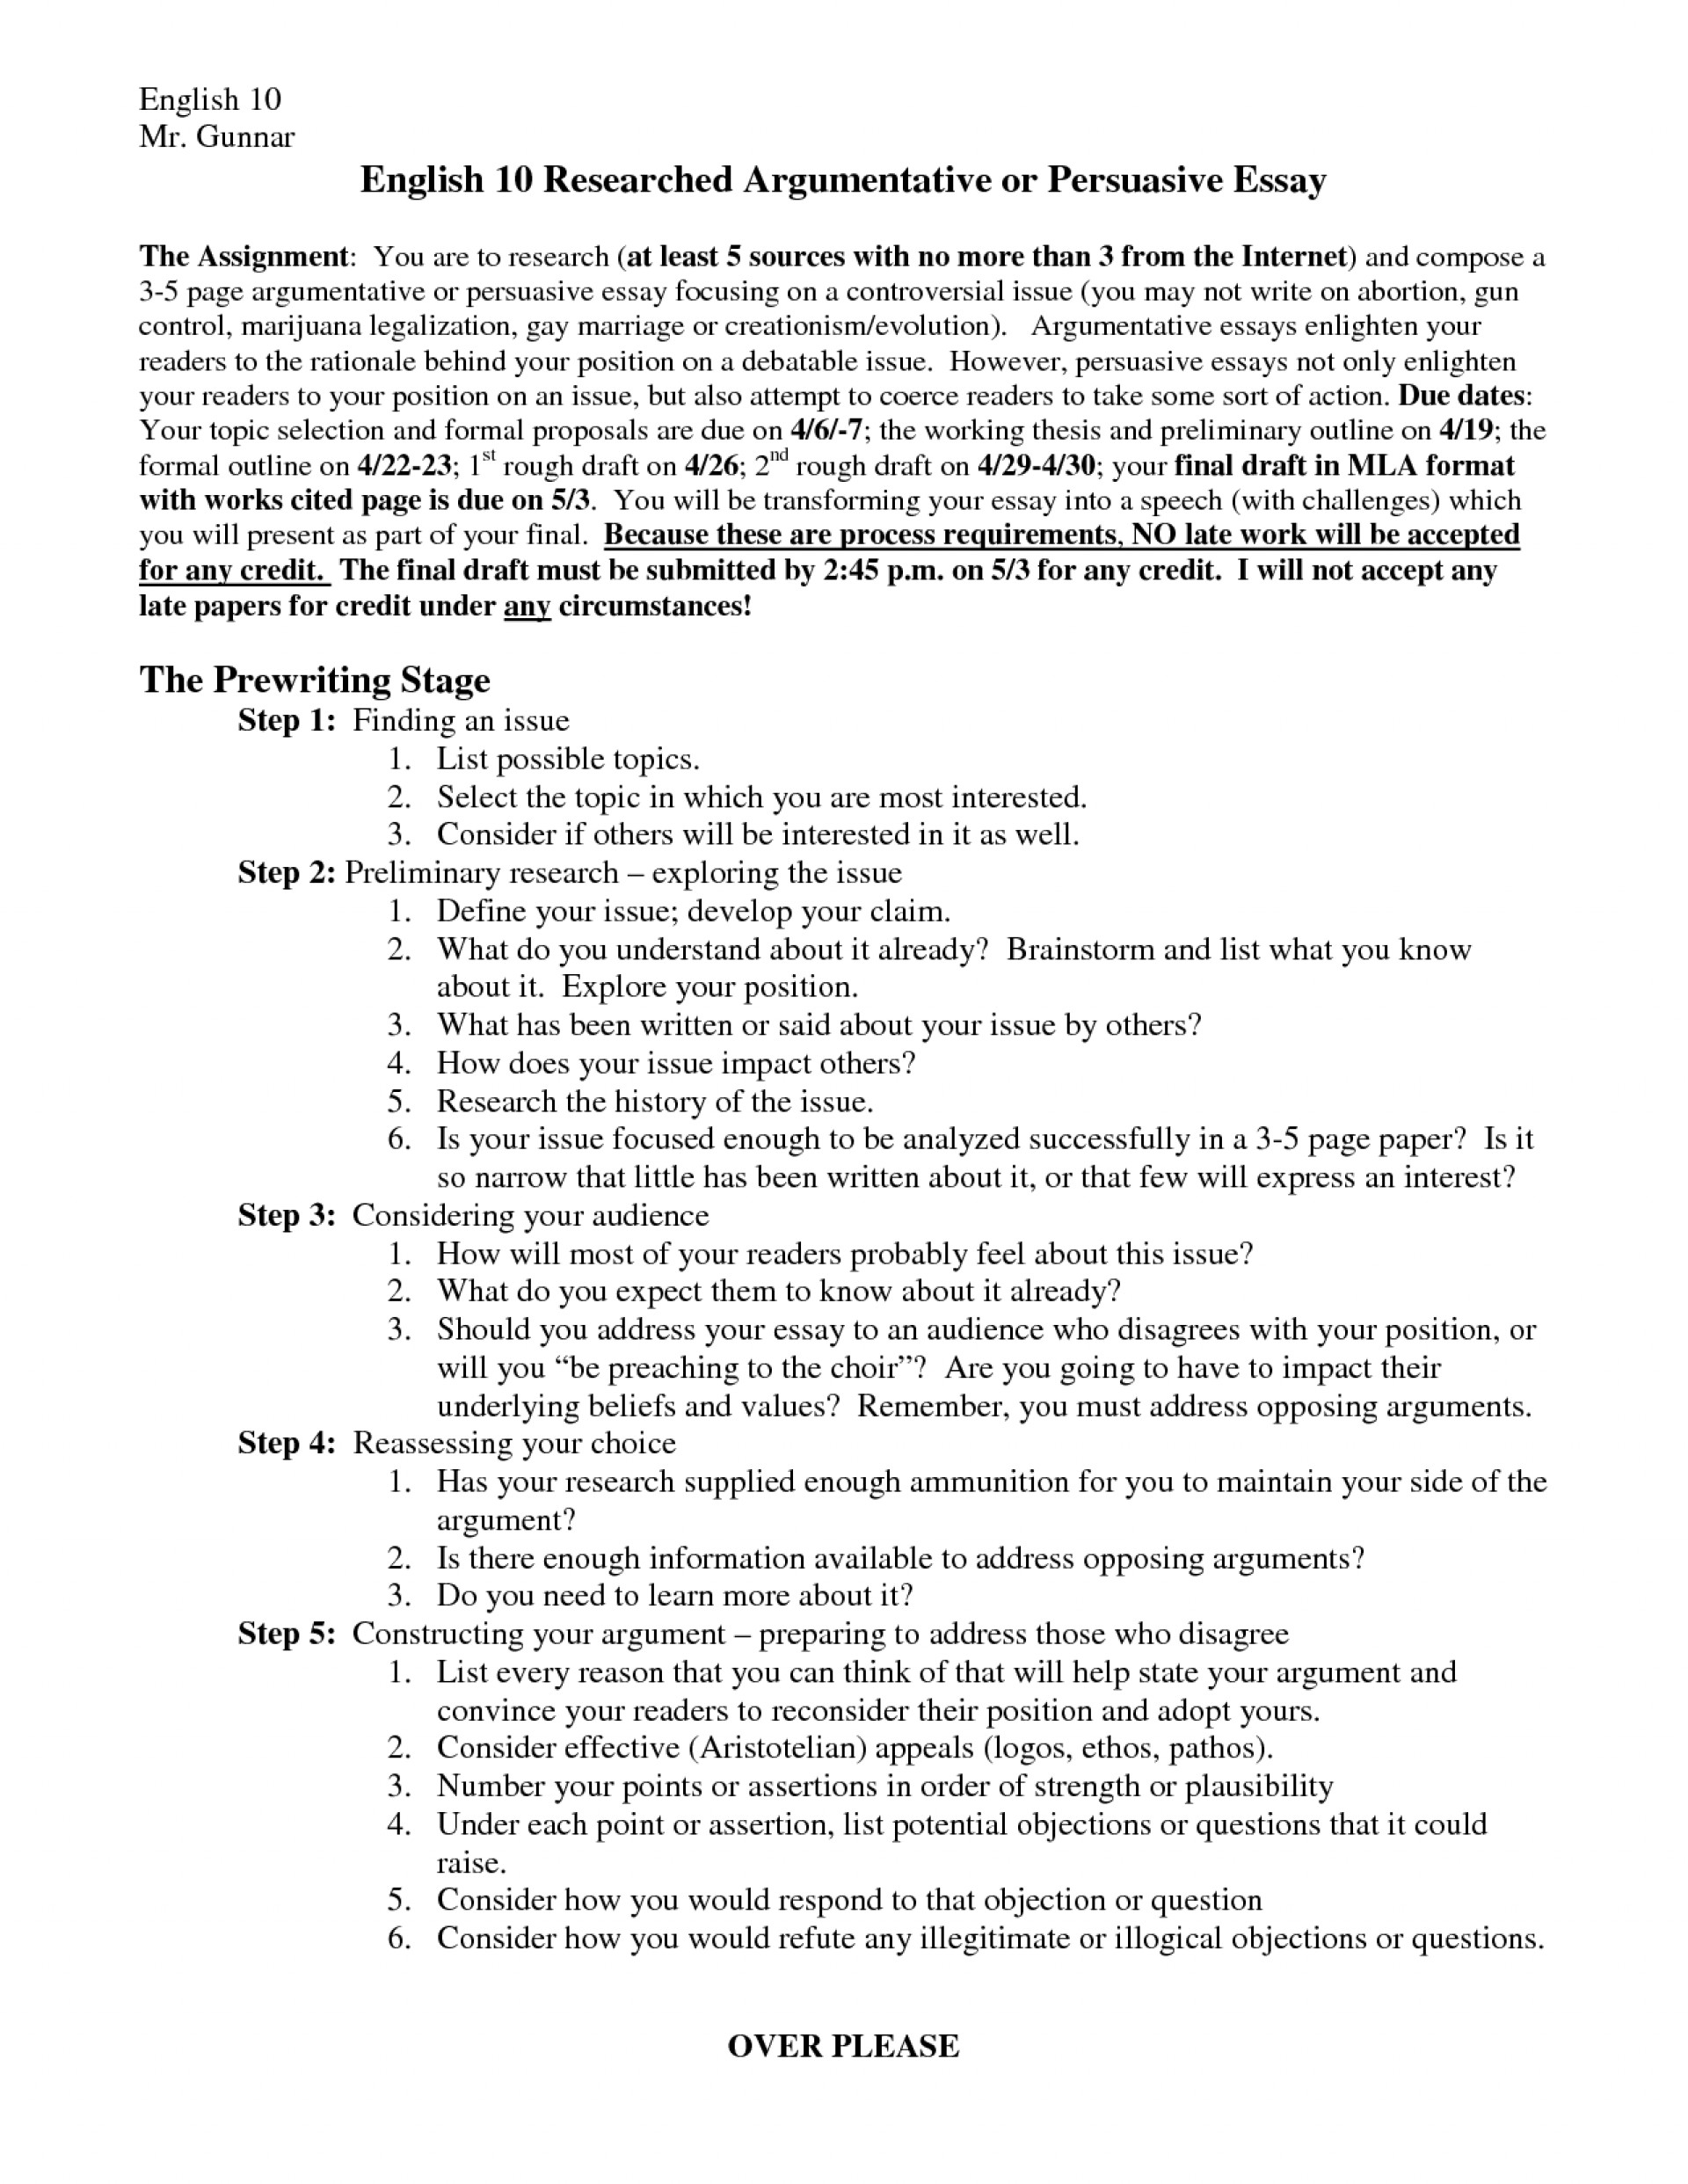 persuasive research paper topic mla format argumentative essay    persuasive research paper topic mla format argumentative essay  outline  awful writing topics about health